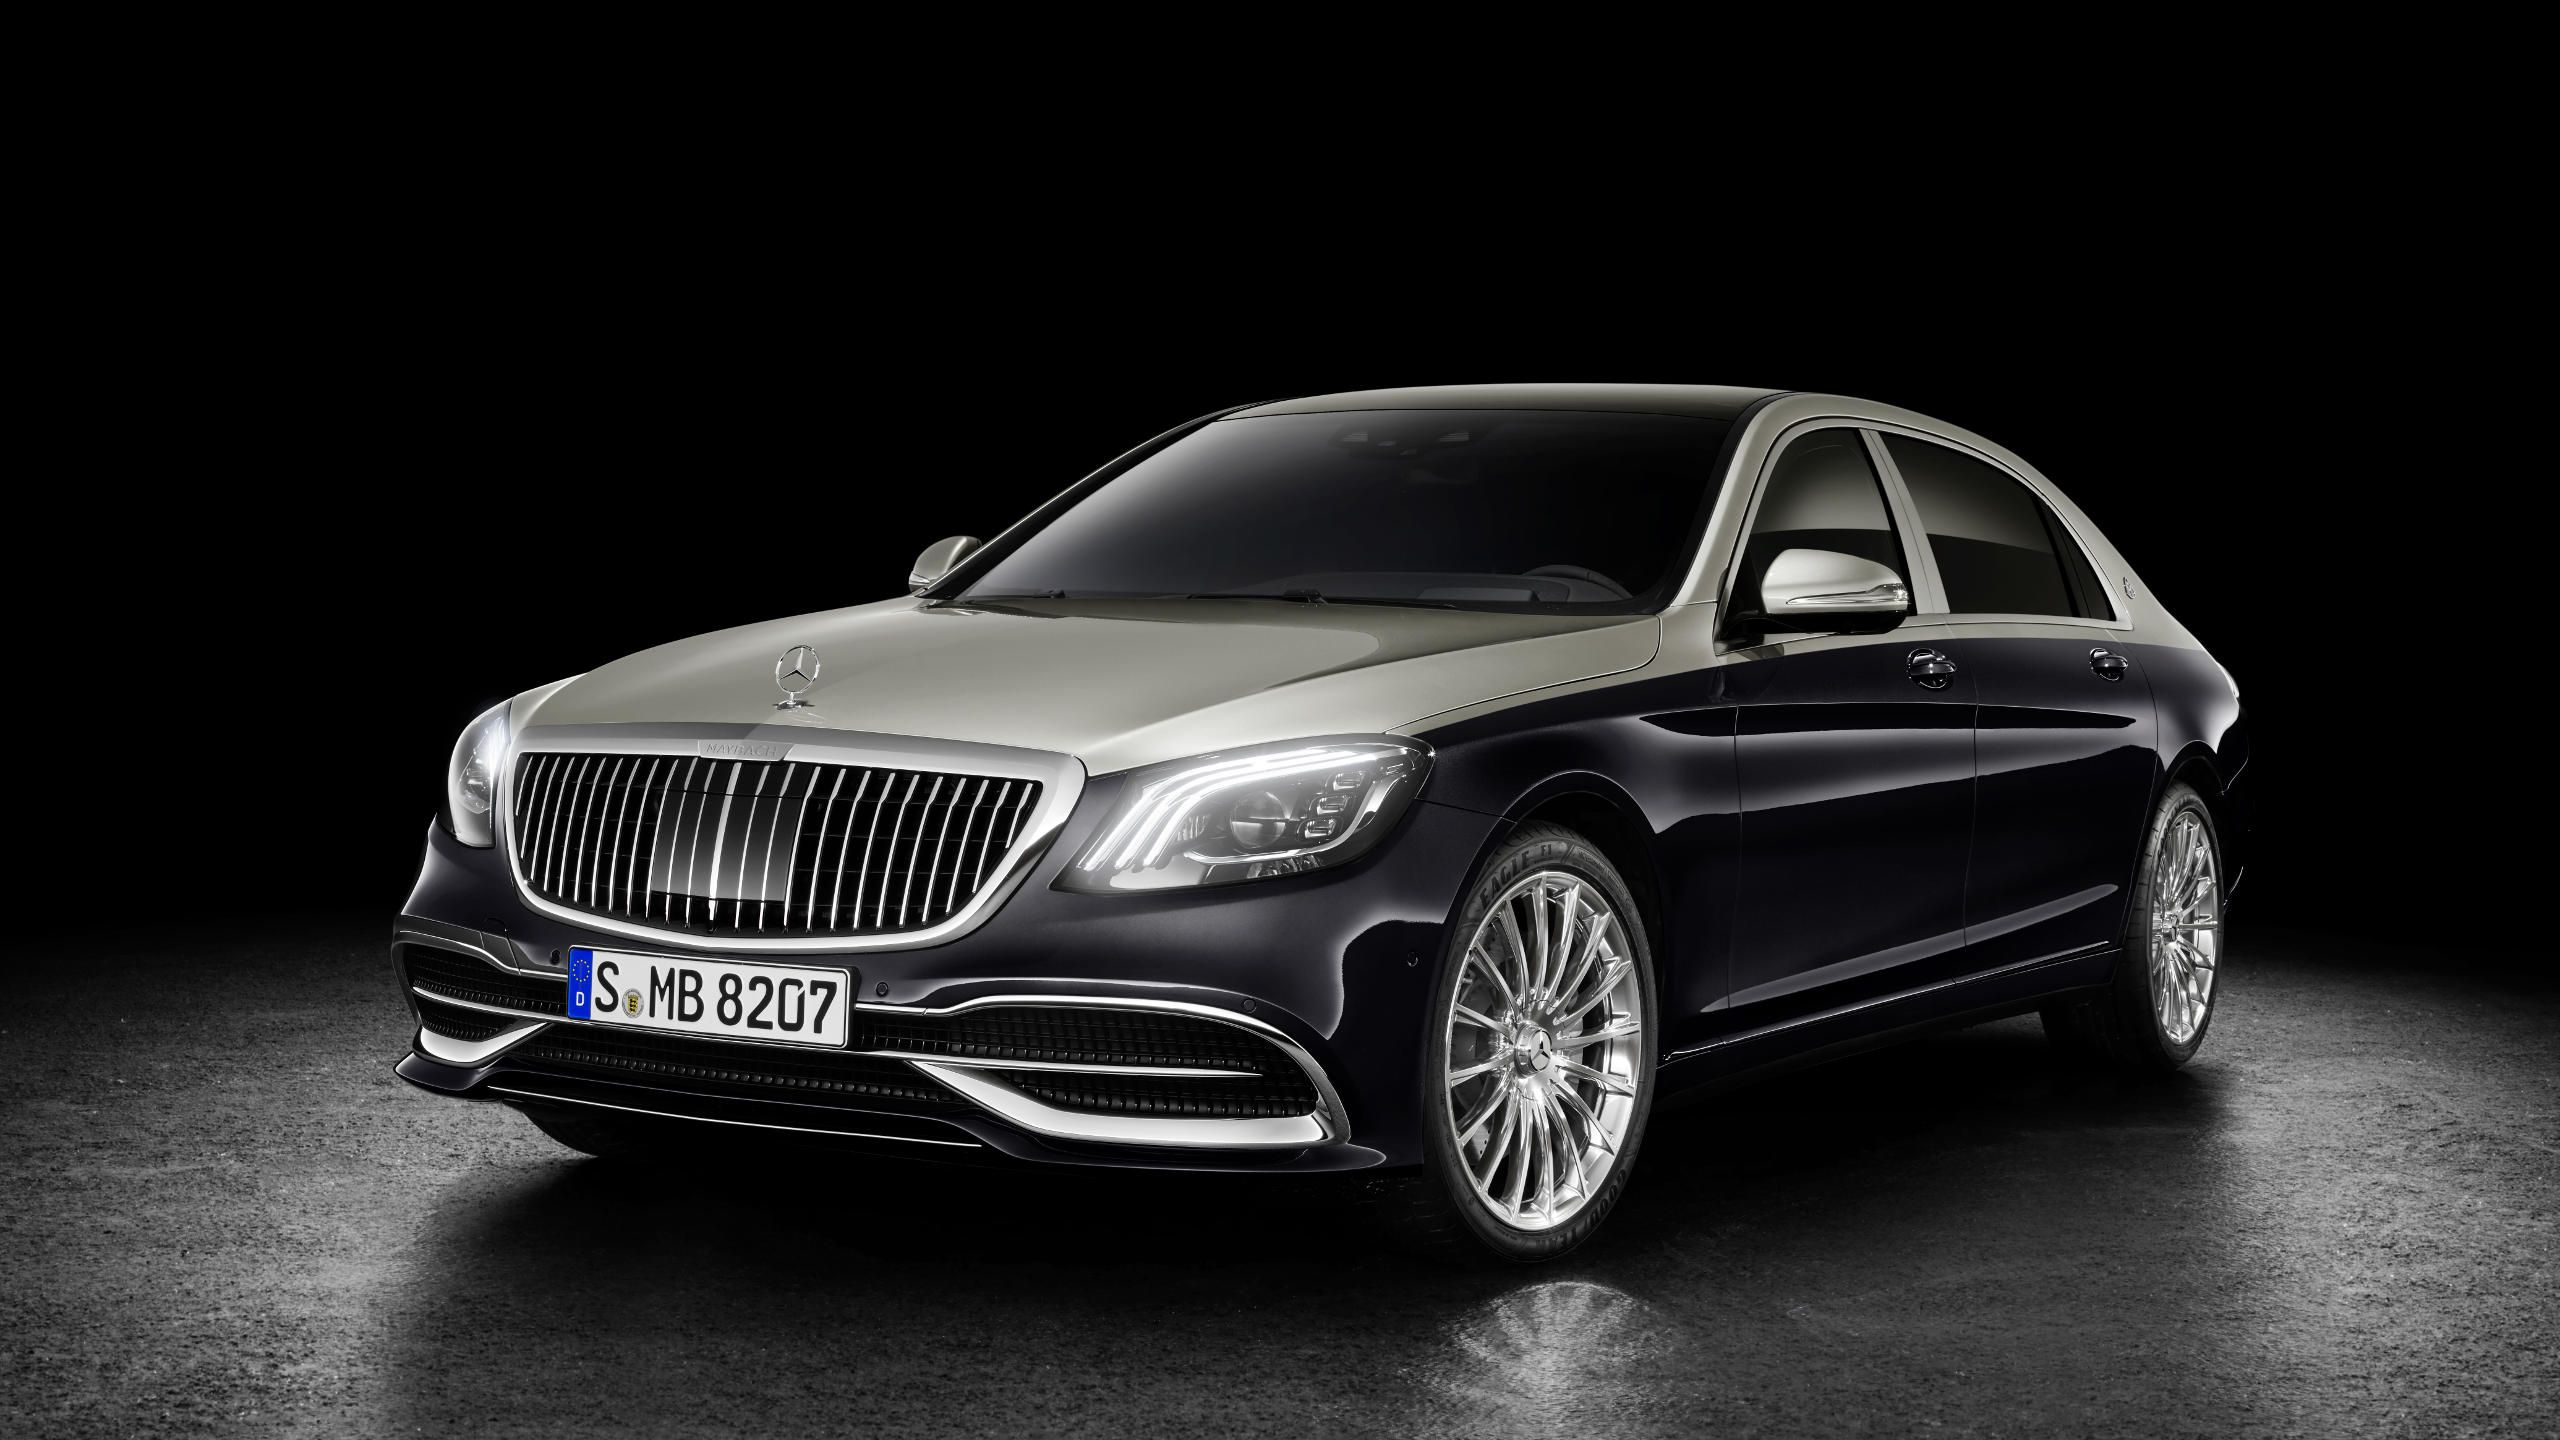 The Mercedes Maybach S Class in a new look Super Cars